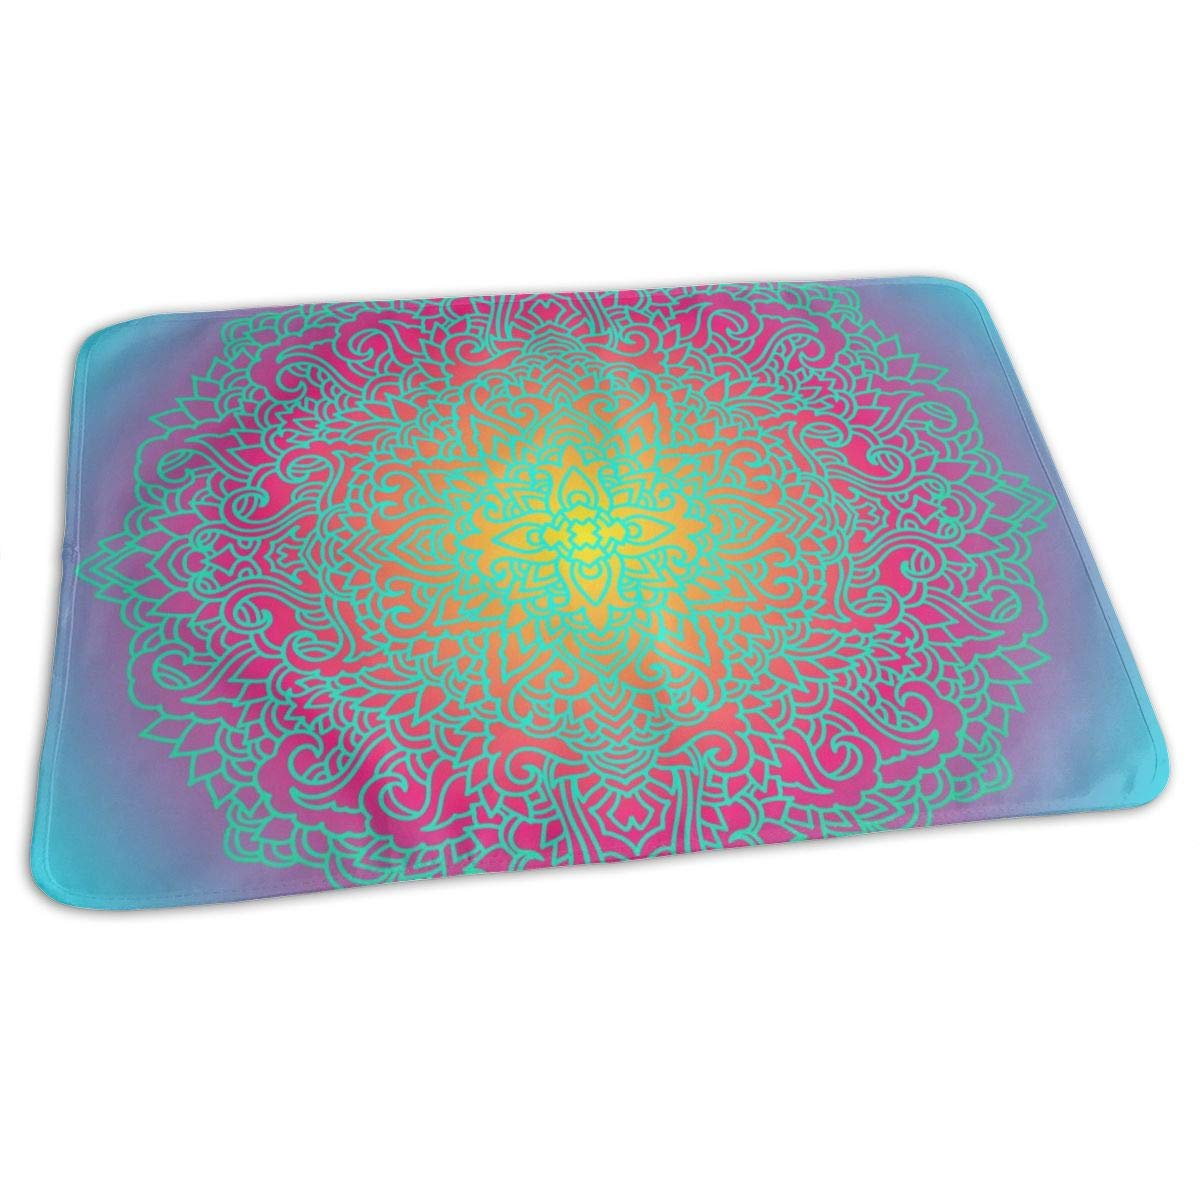 Osvbs Lovely Baby Reusable Waterproof Portable Abstract Mandala Ornament Gradient Background Changing Pad Home Travel 27.5''x19.7'' by Osvbs